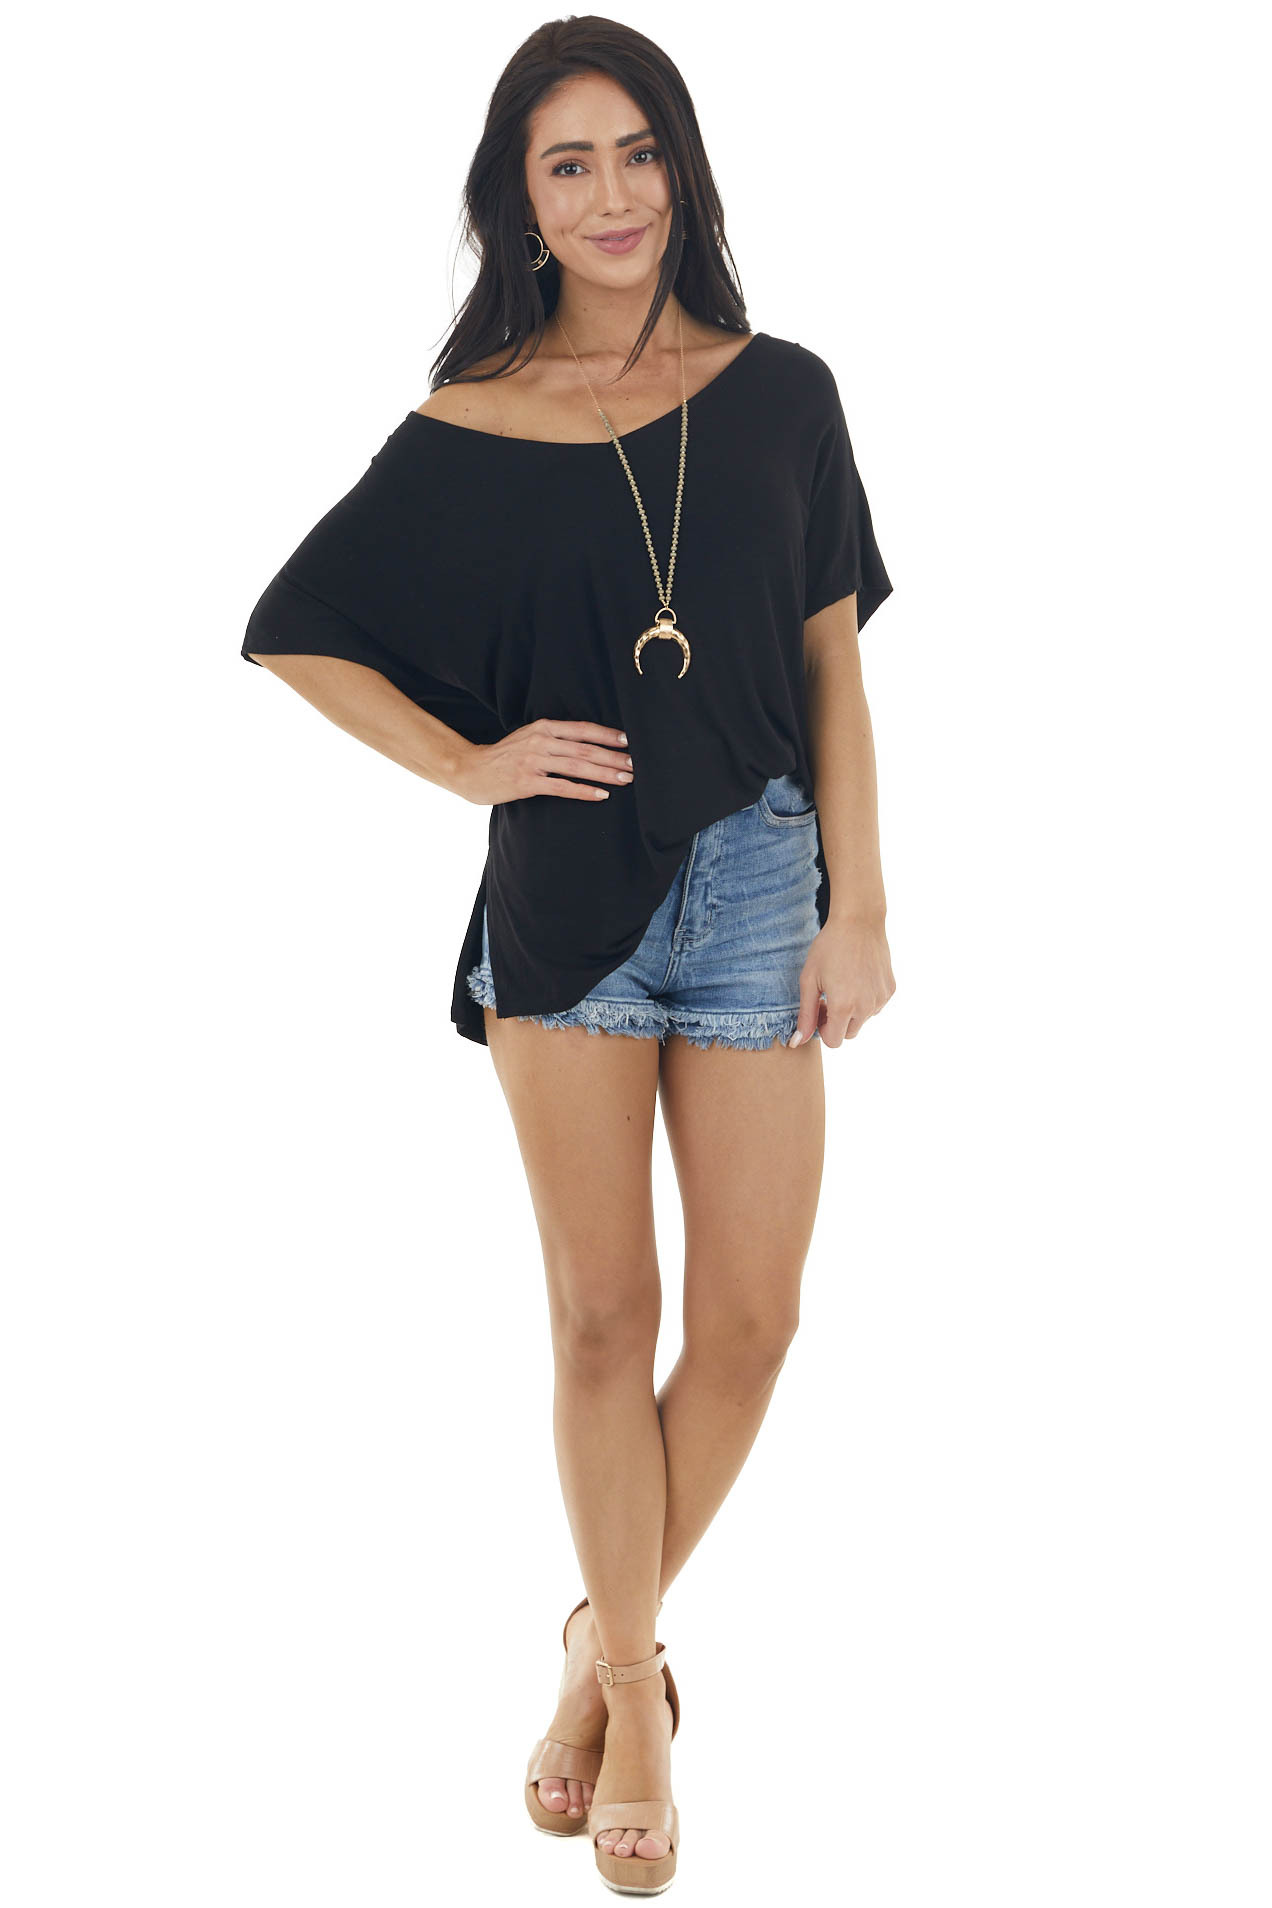 Black Short Sleeve Knit Top with Back Criss Cross Details